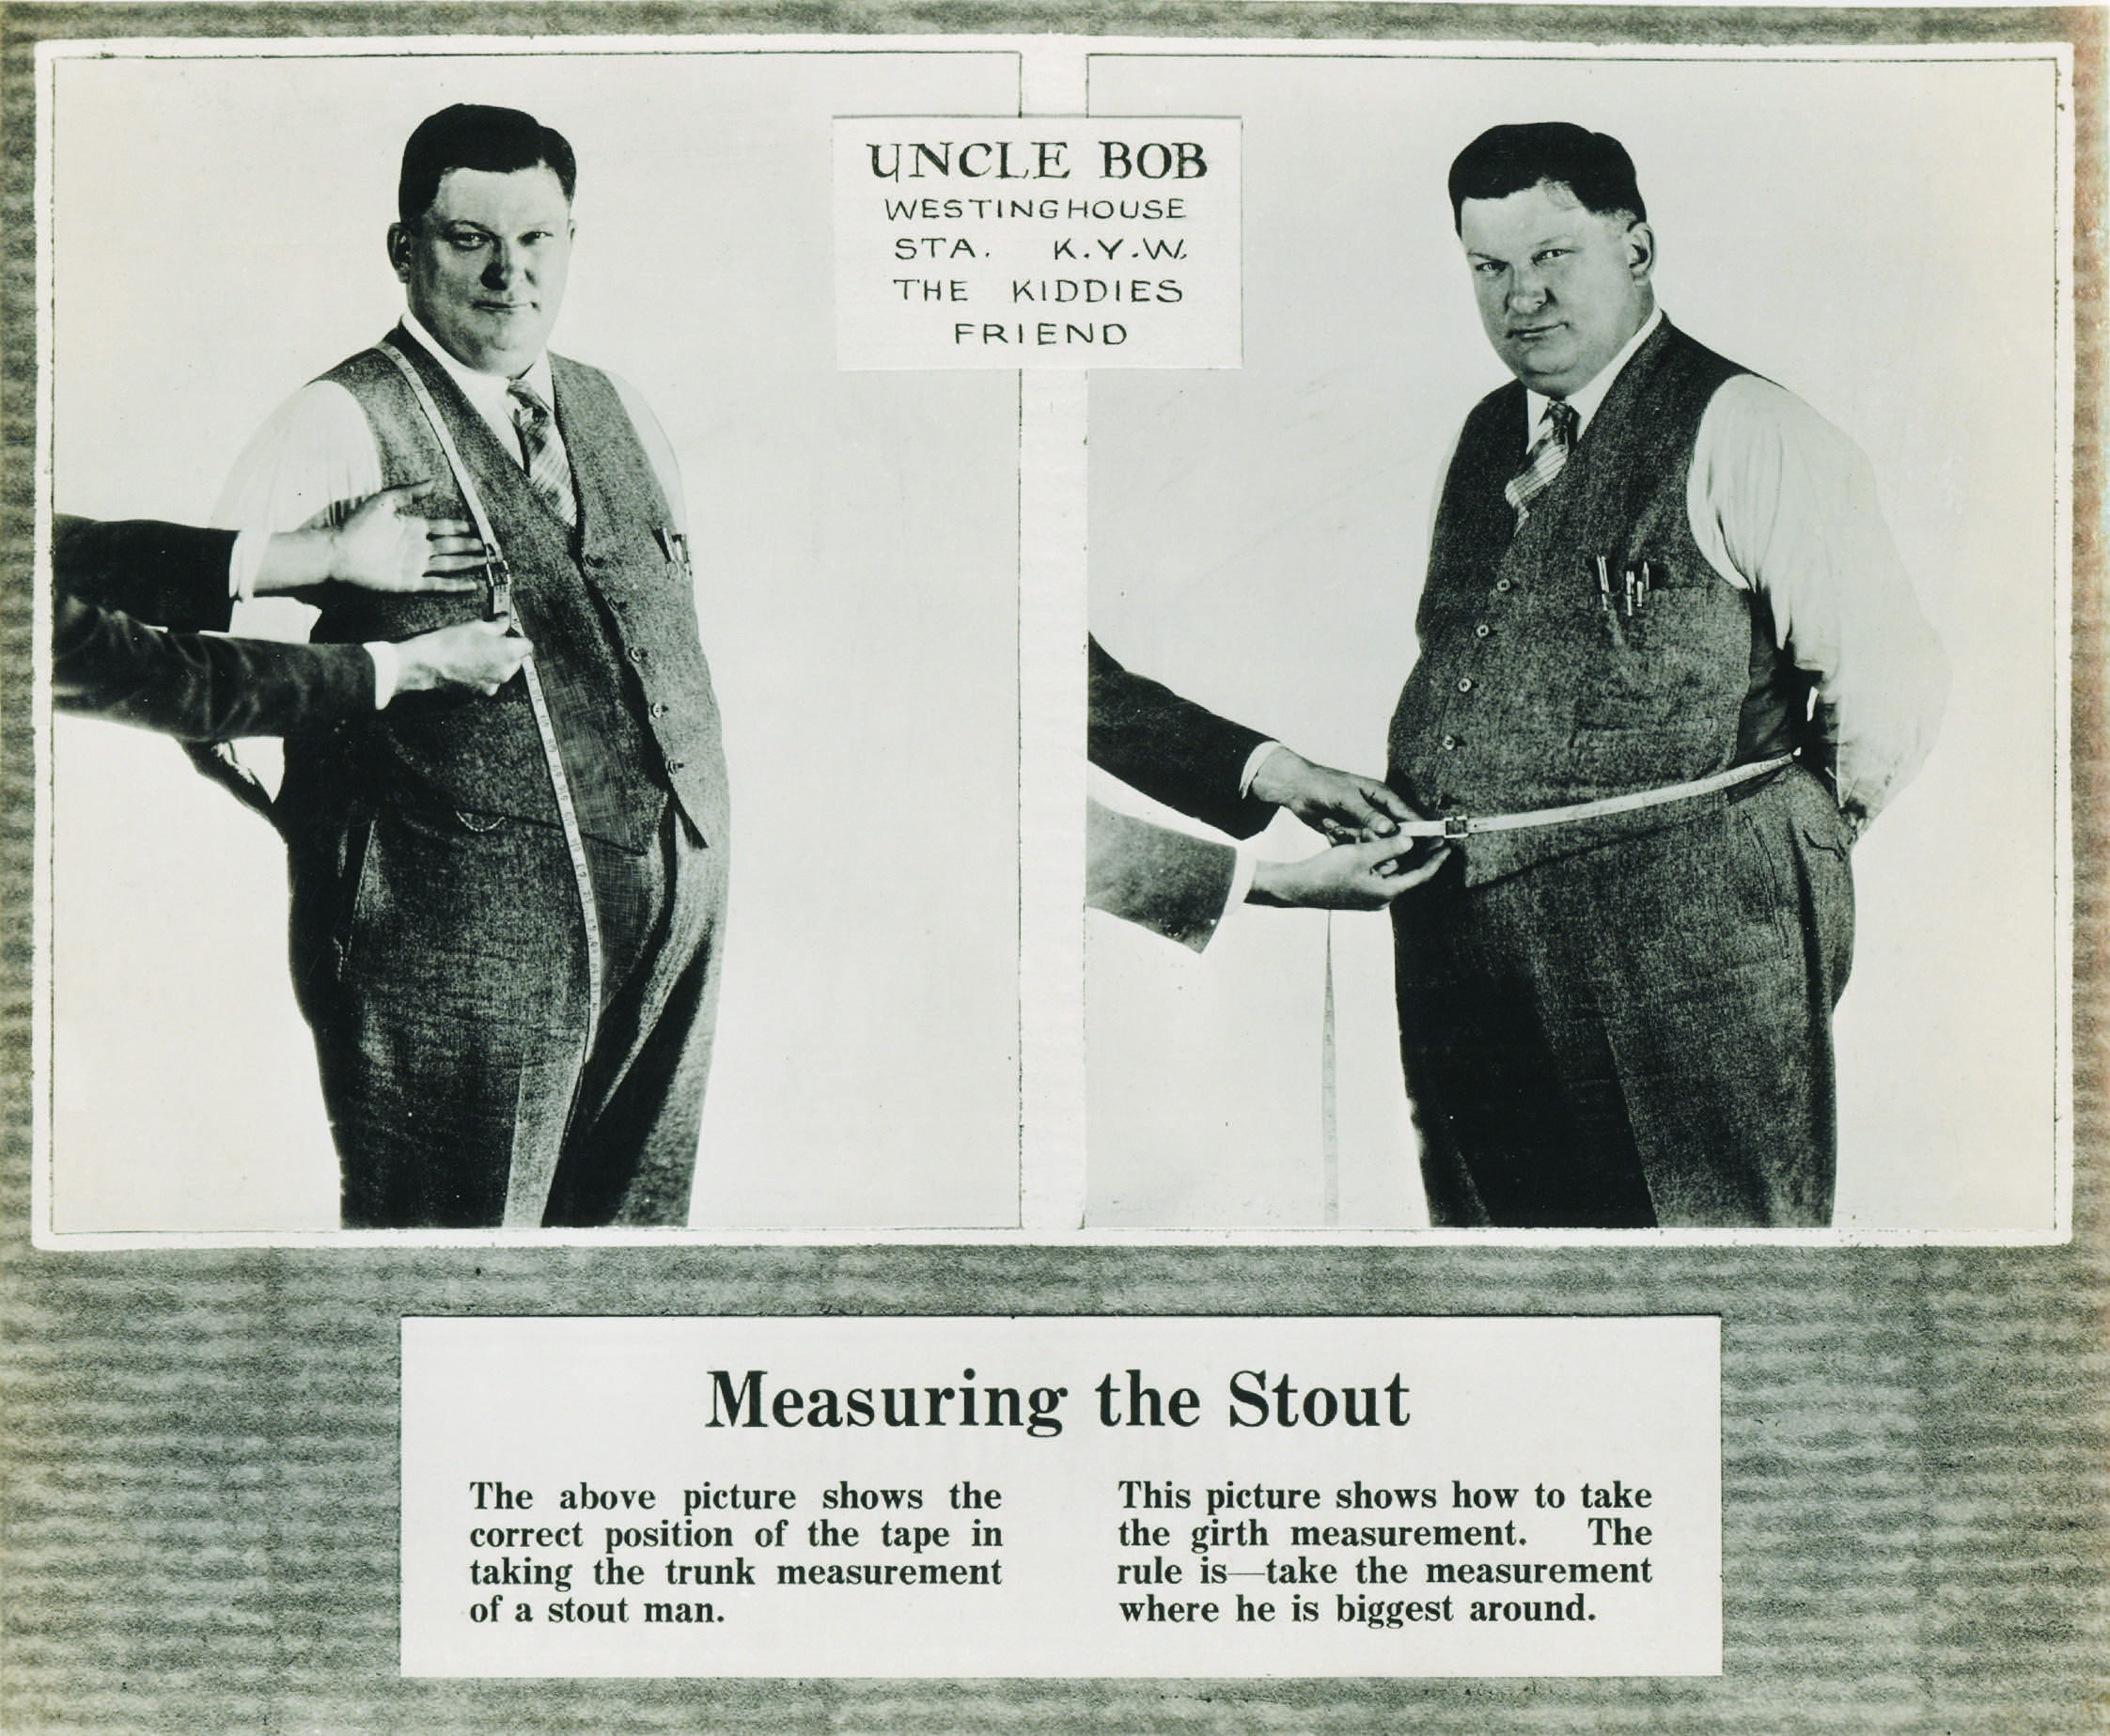 1910 - Pg 34 stout man.jpg